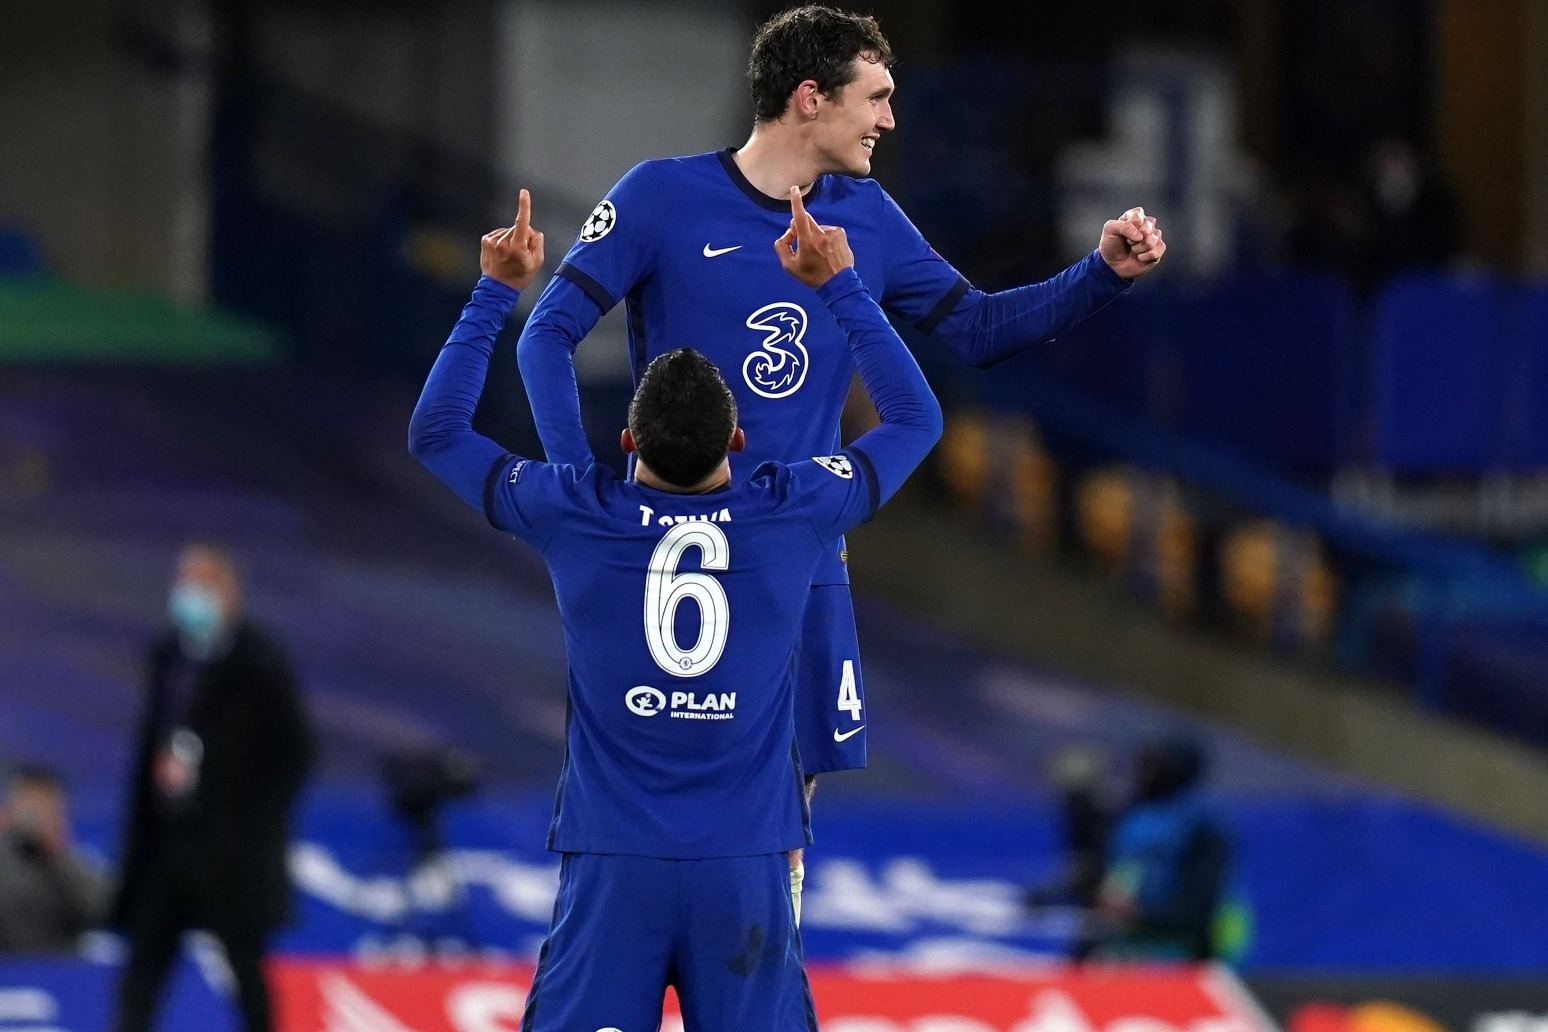 Chelsea will go into Champions League final with positive energy, says Tuchel